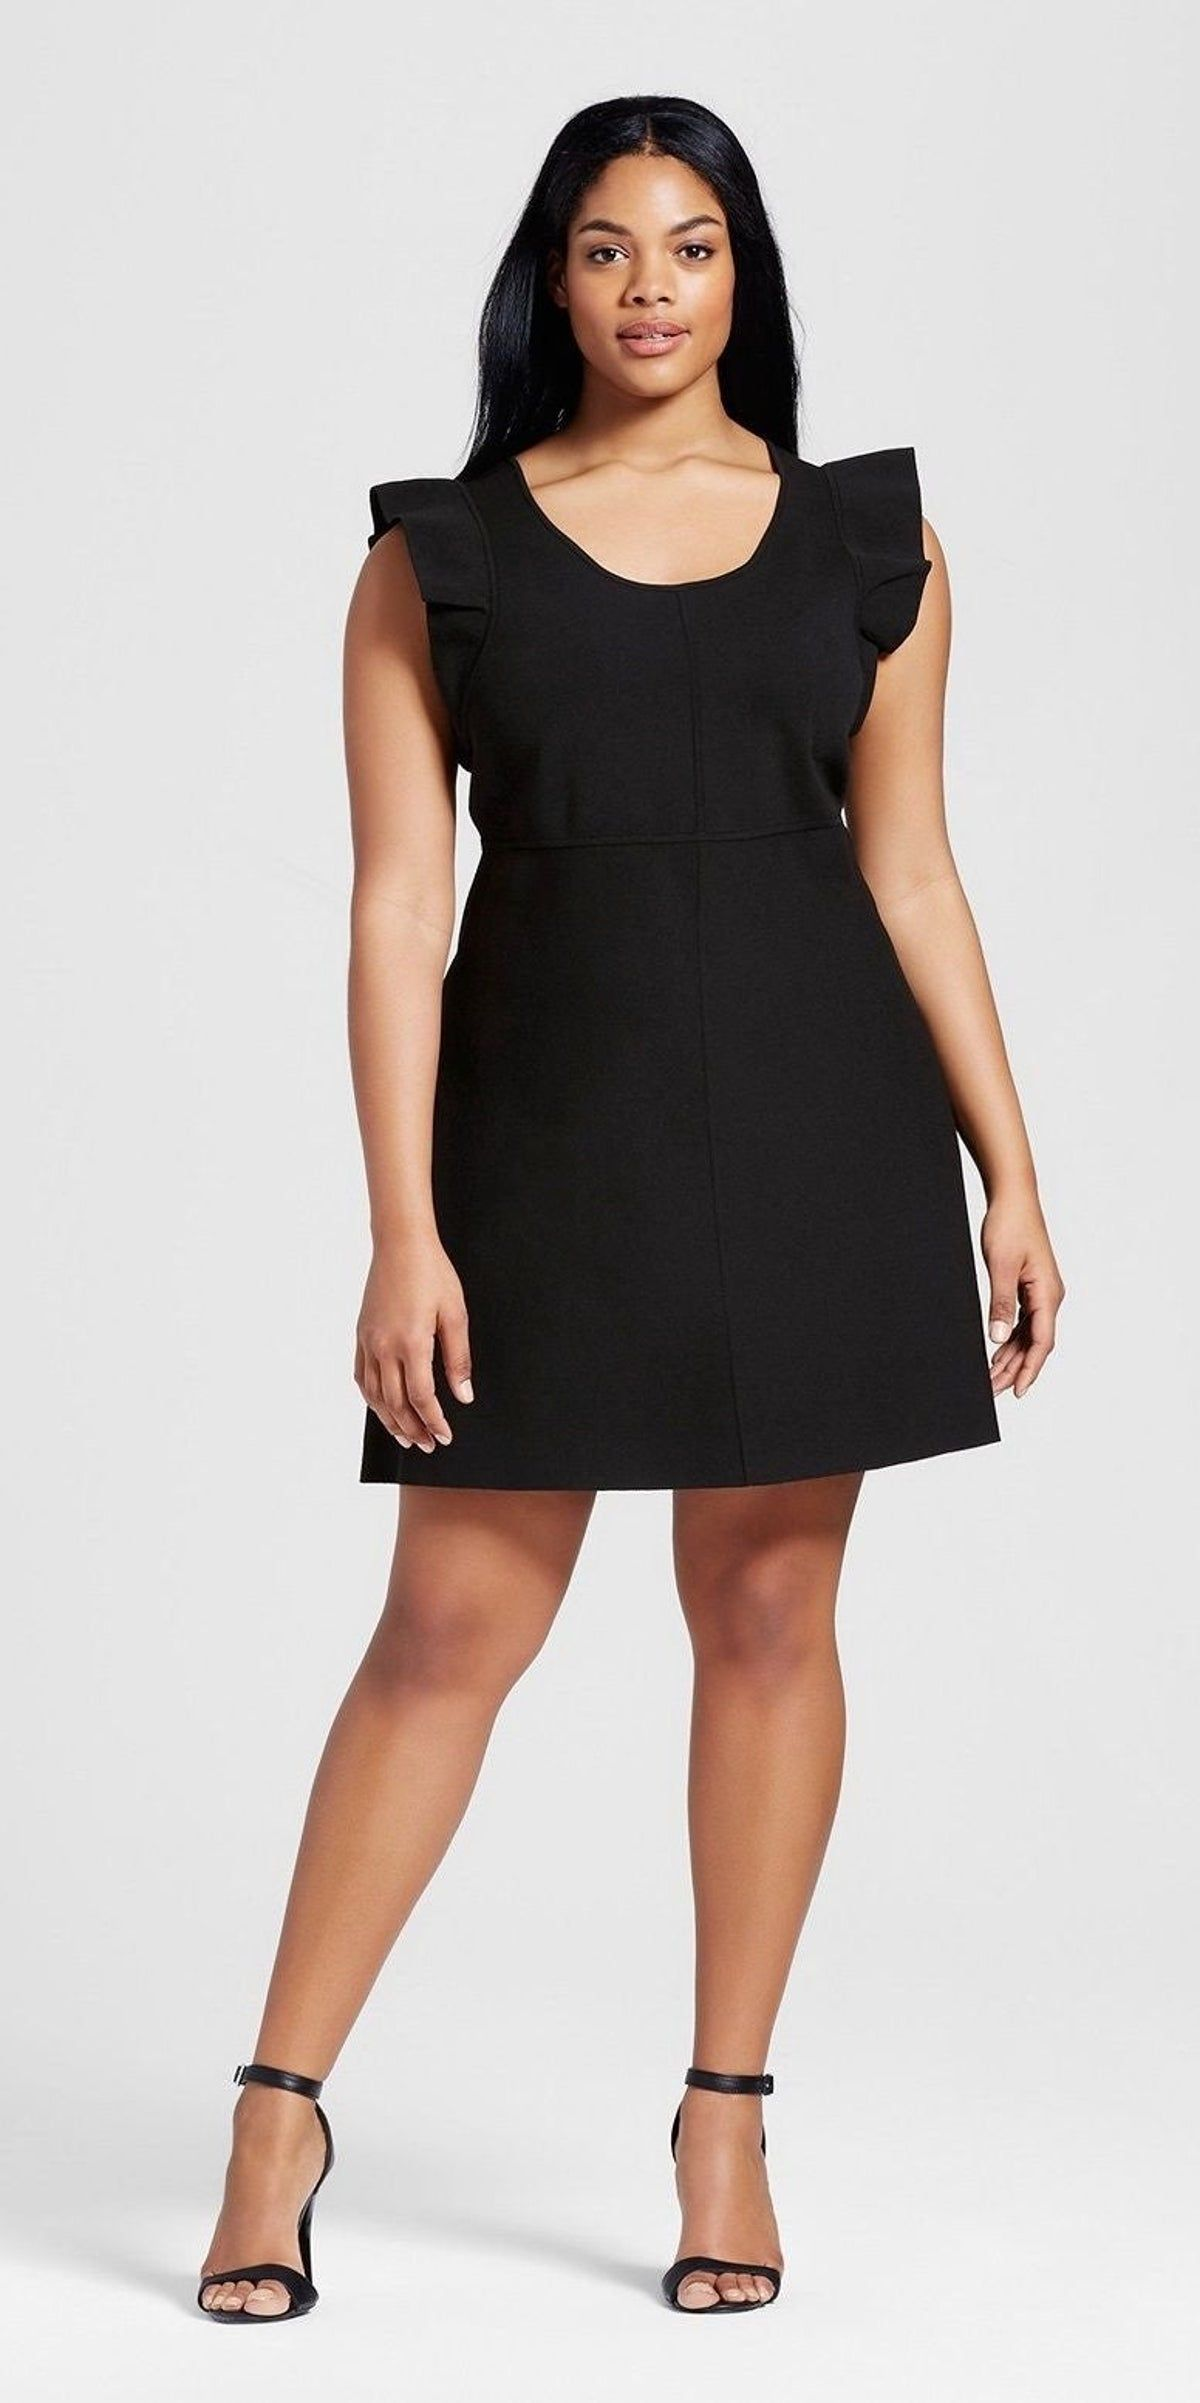 Pin By Diane Goodwin On Fashion Short Dresses Casual Fashion Victoria Beckham Target [ 2403 x 1200 Pixel ]